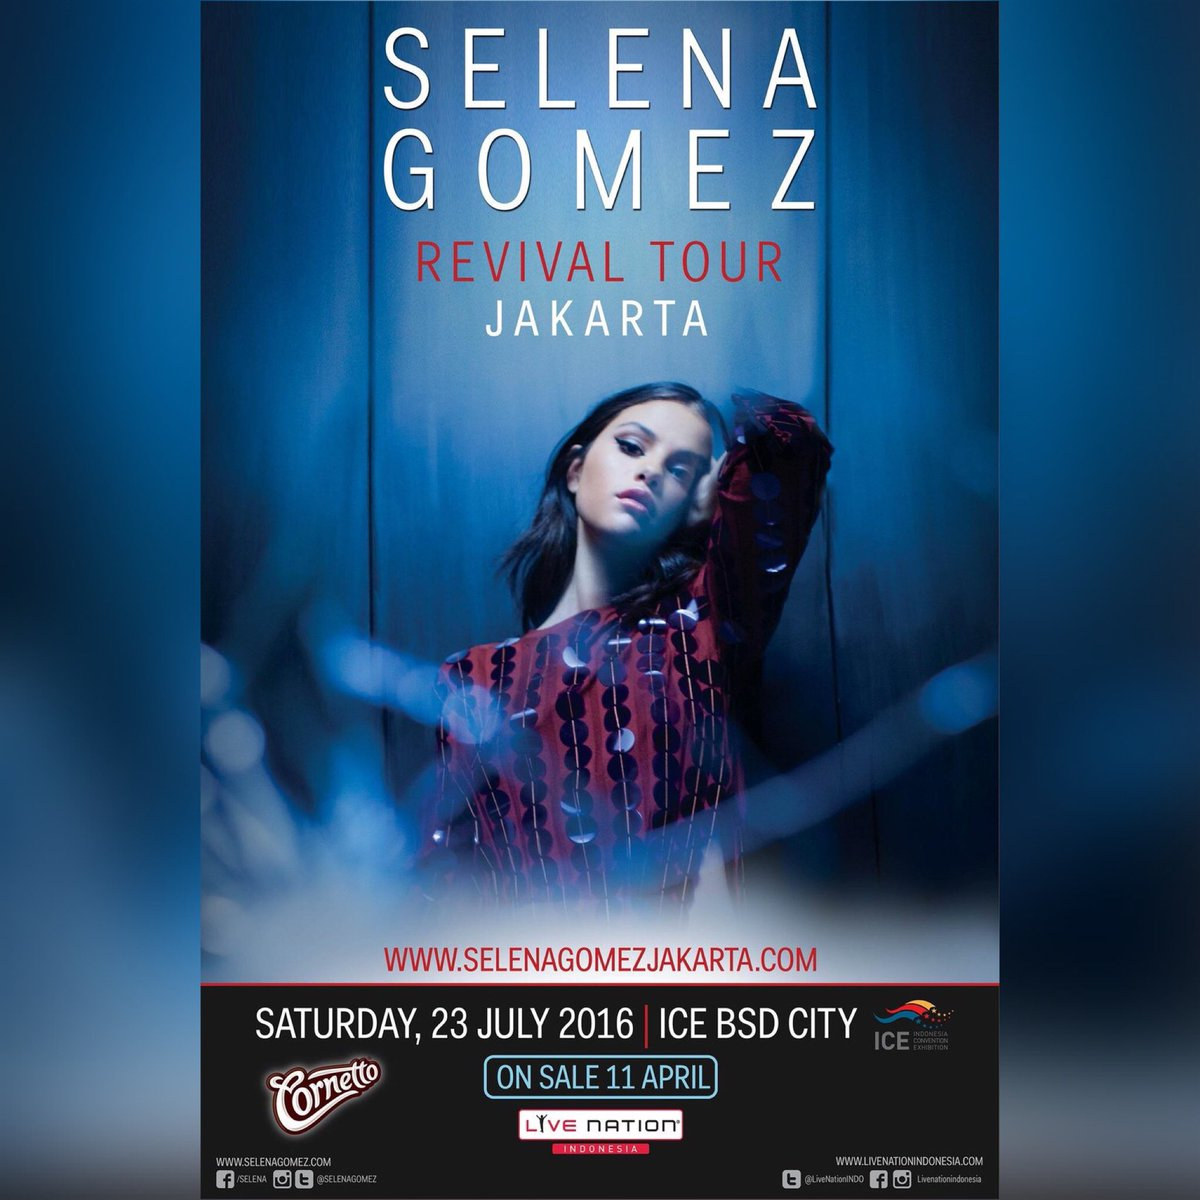 Who's excited for #SelenaGomezJKT? Get her new album #Revival here https://t.co/Os9MgW1eNa @SelenatorINA https://t.co/dHrANizGwH